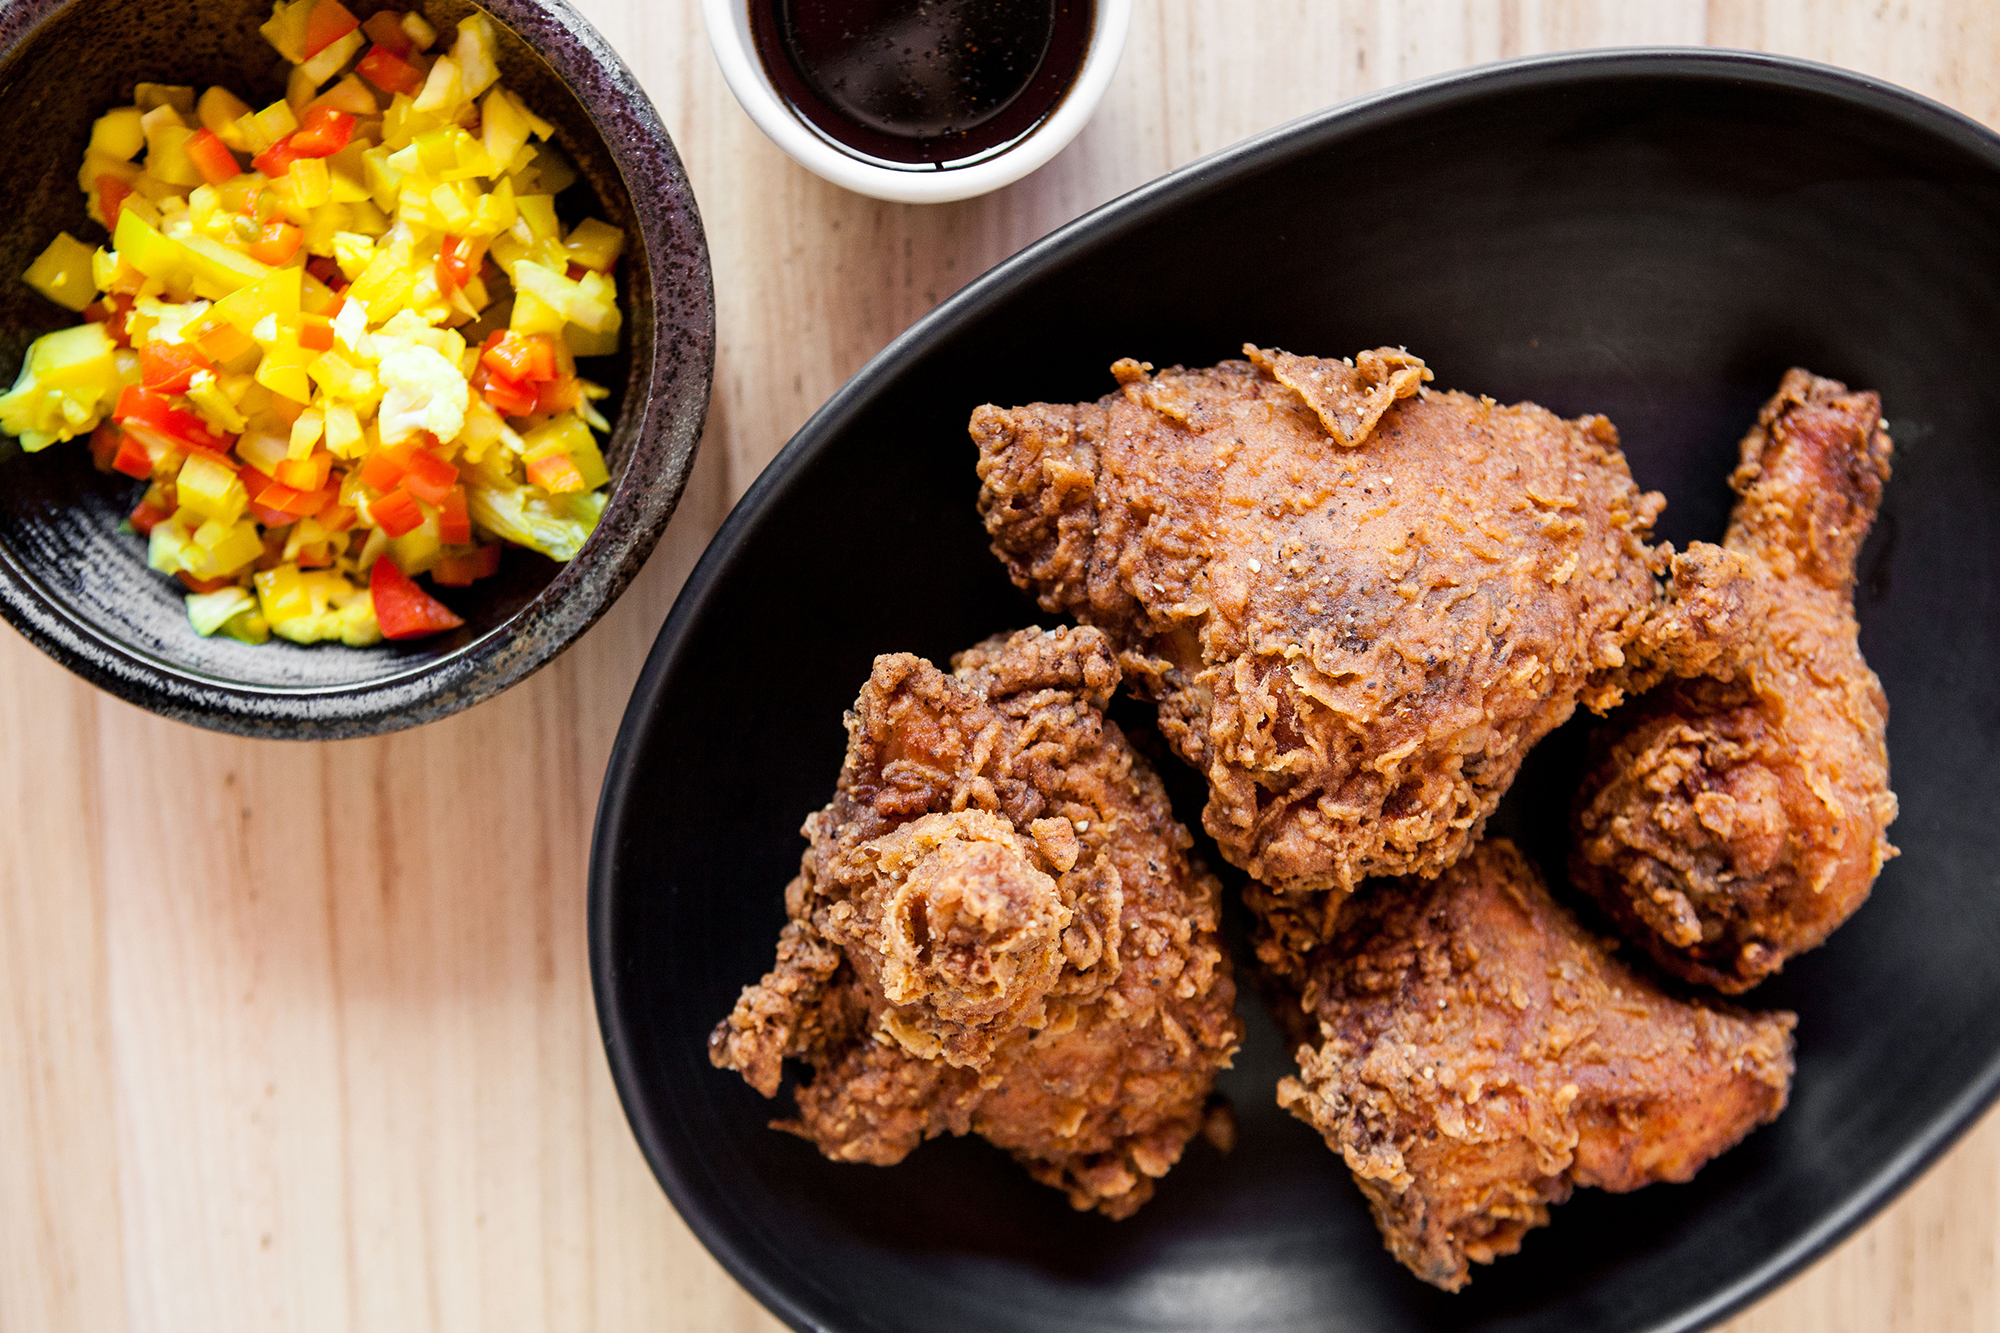 The Bellwether Fried Chicken